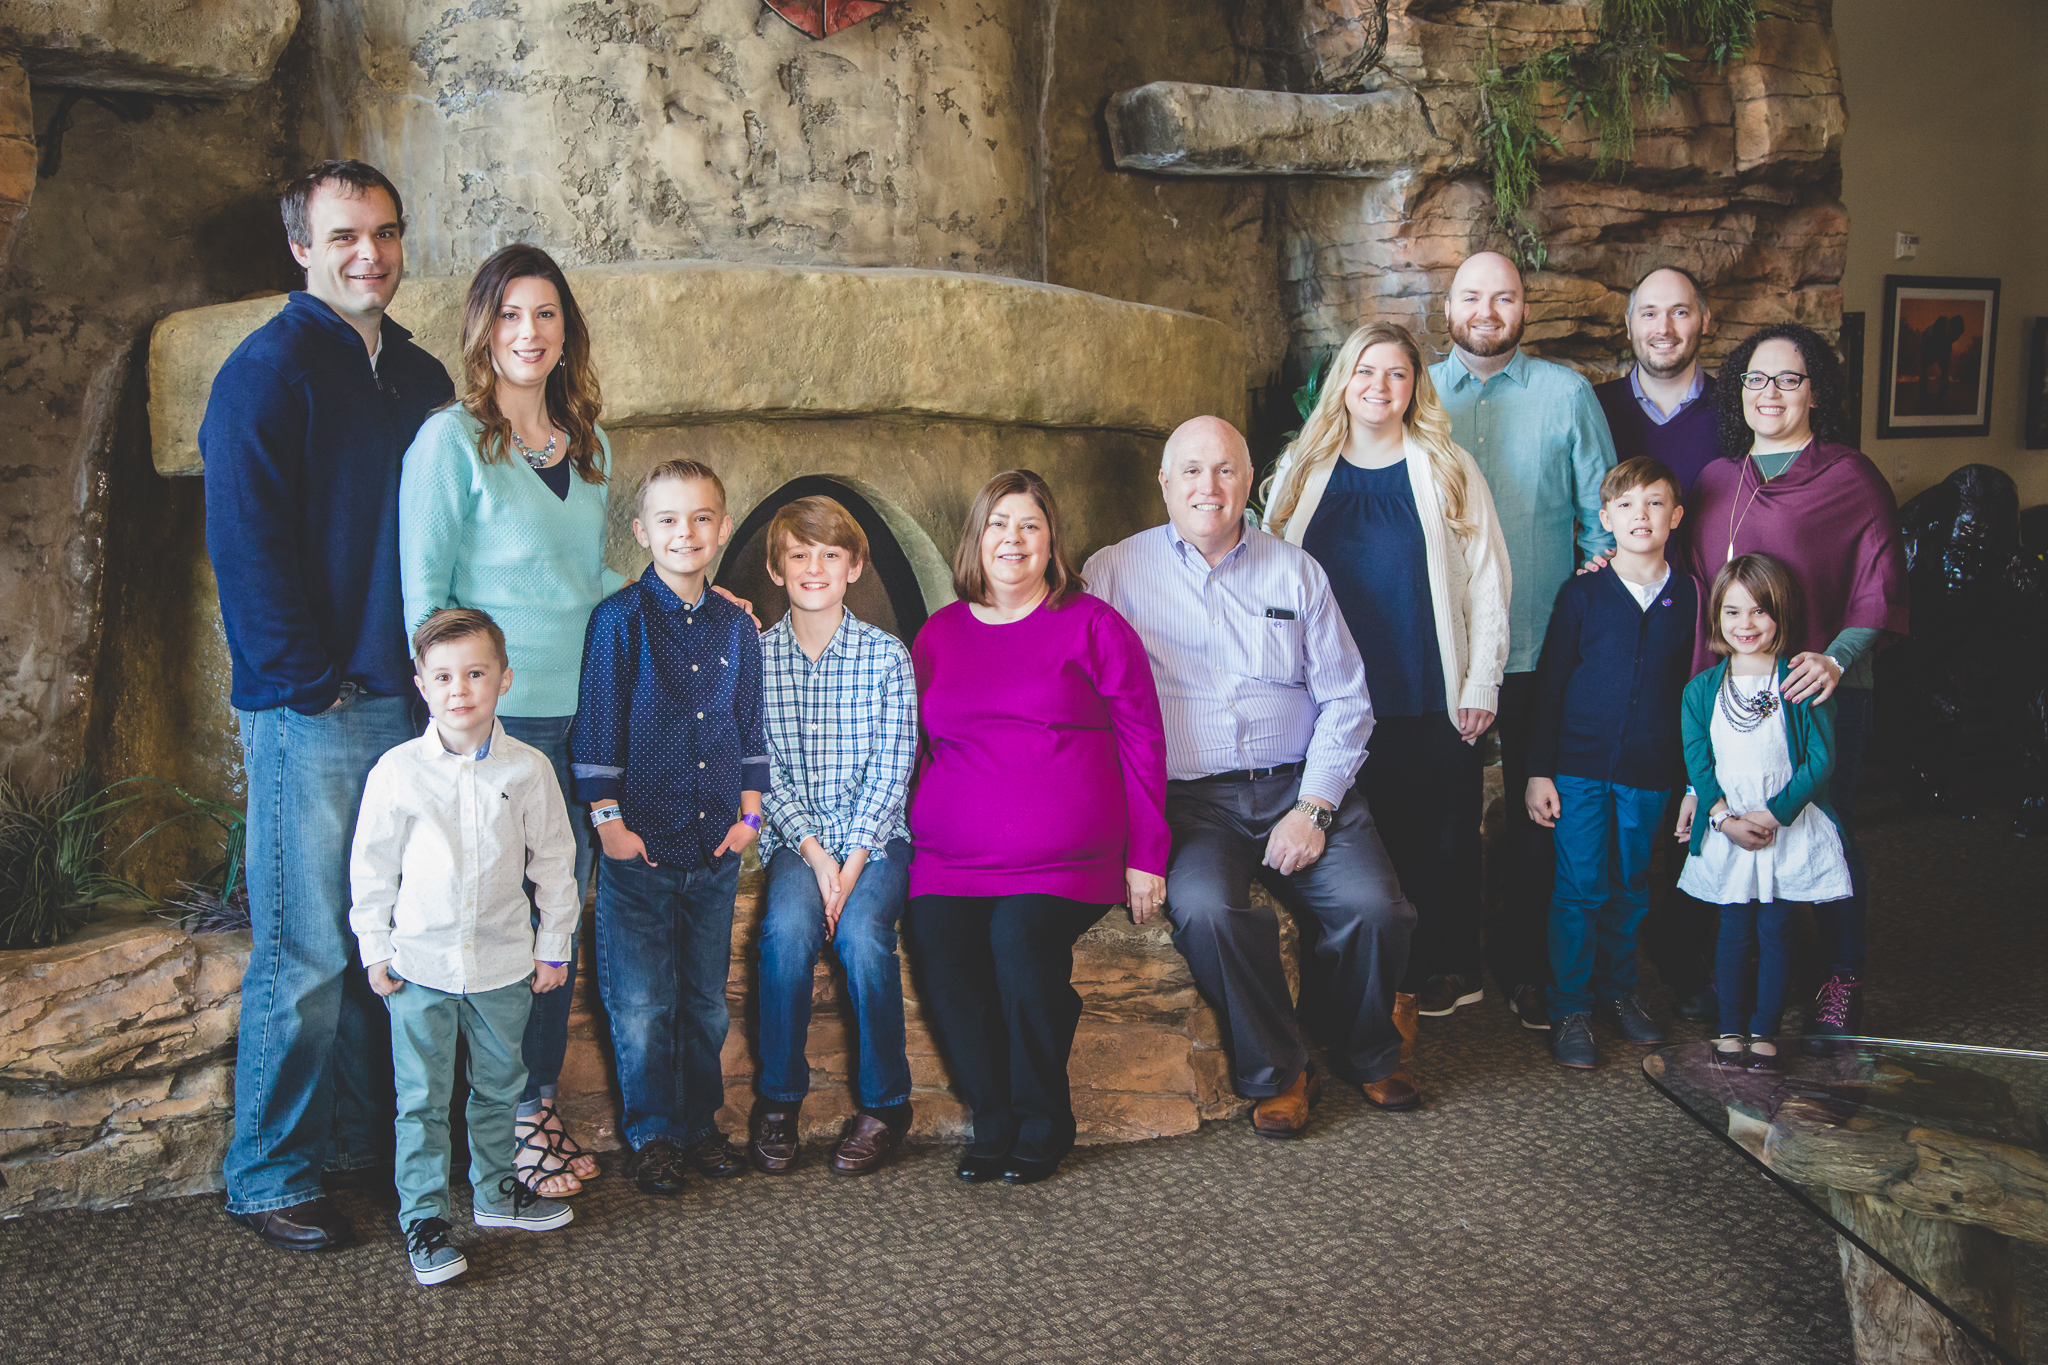 Family Photographer Wisconsin Dells